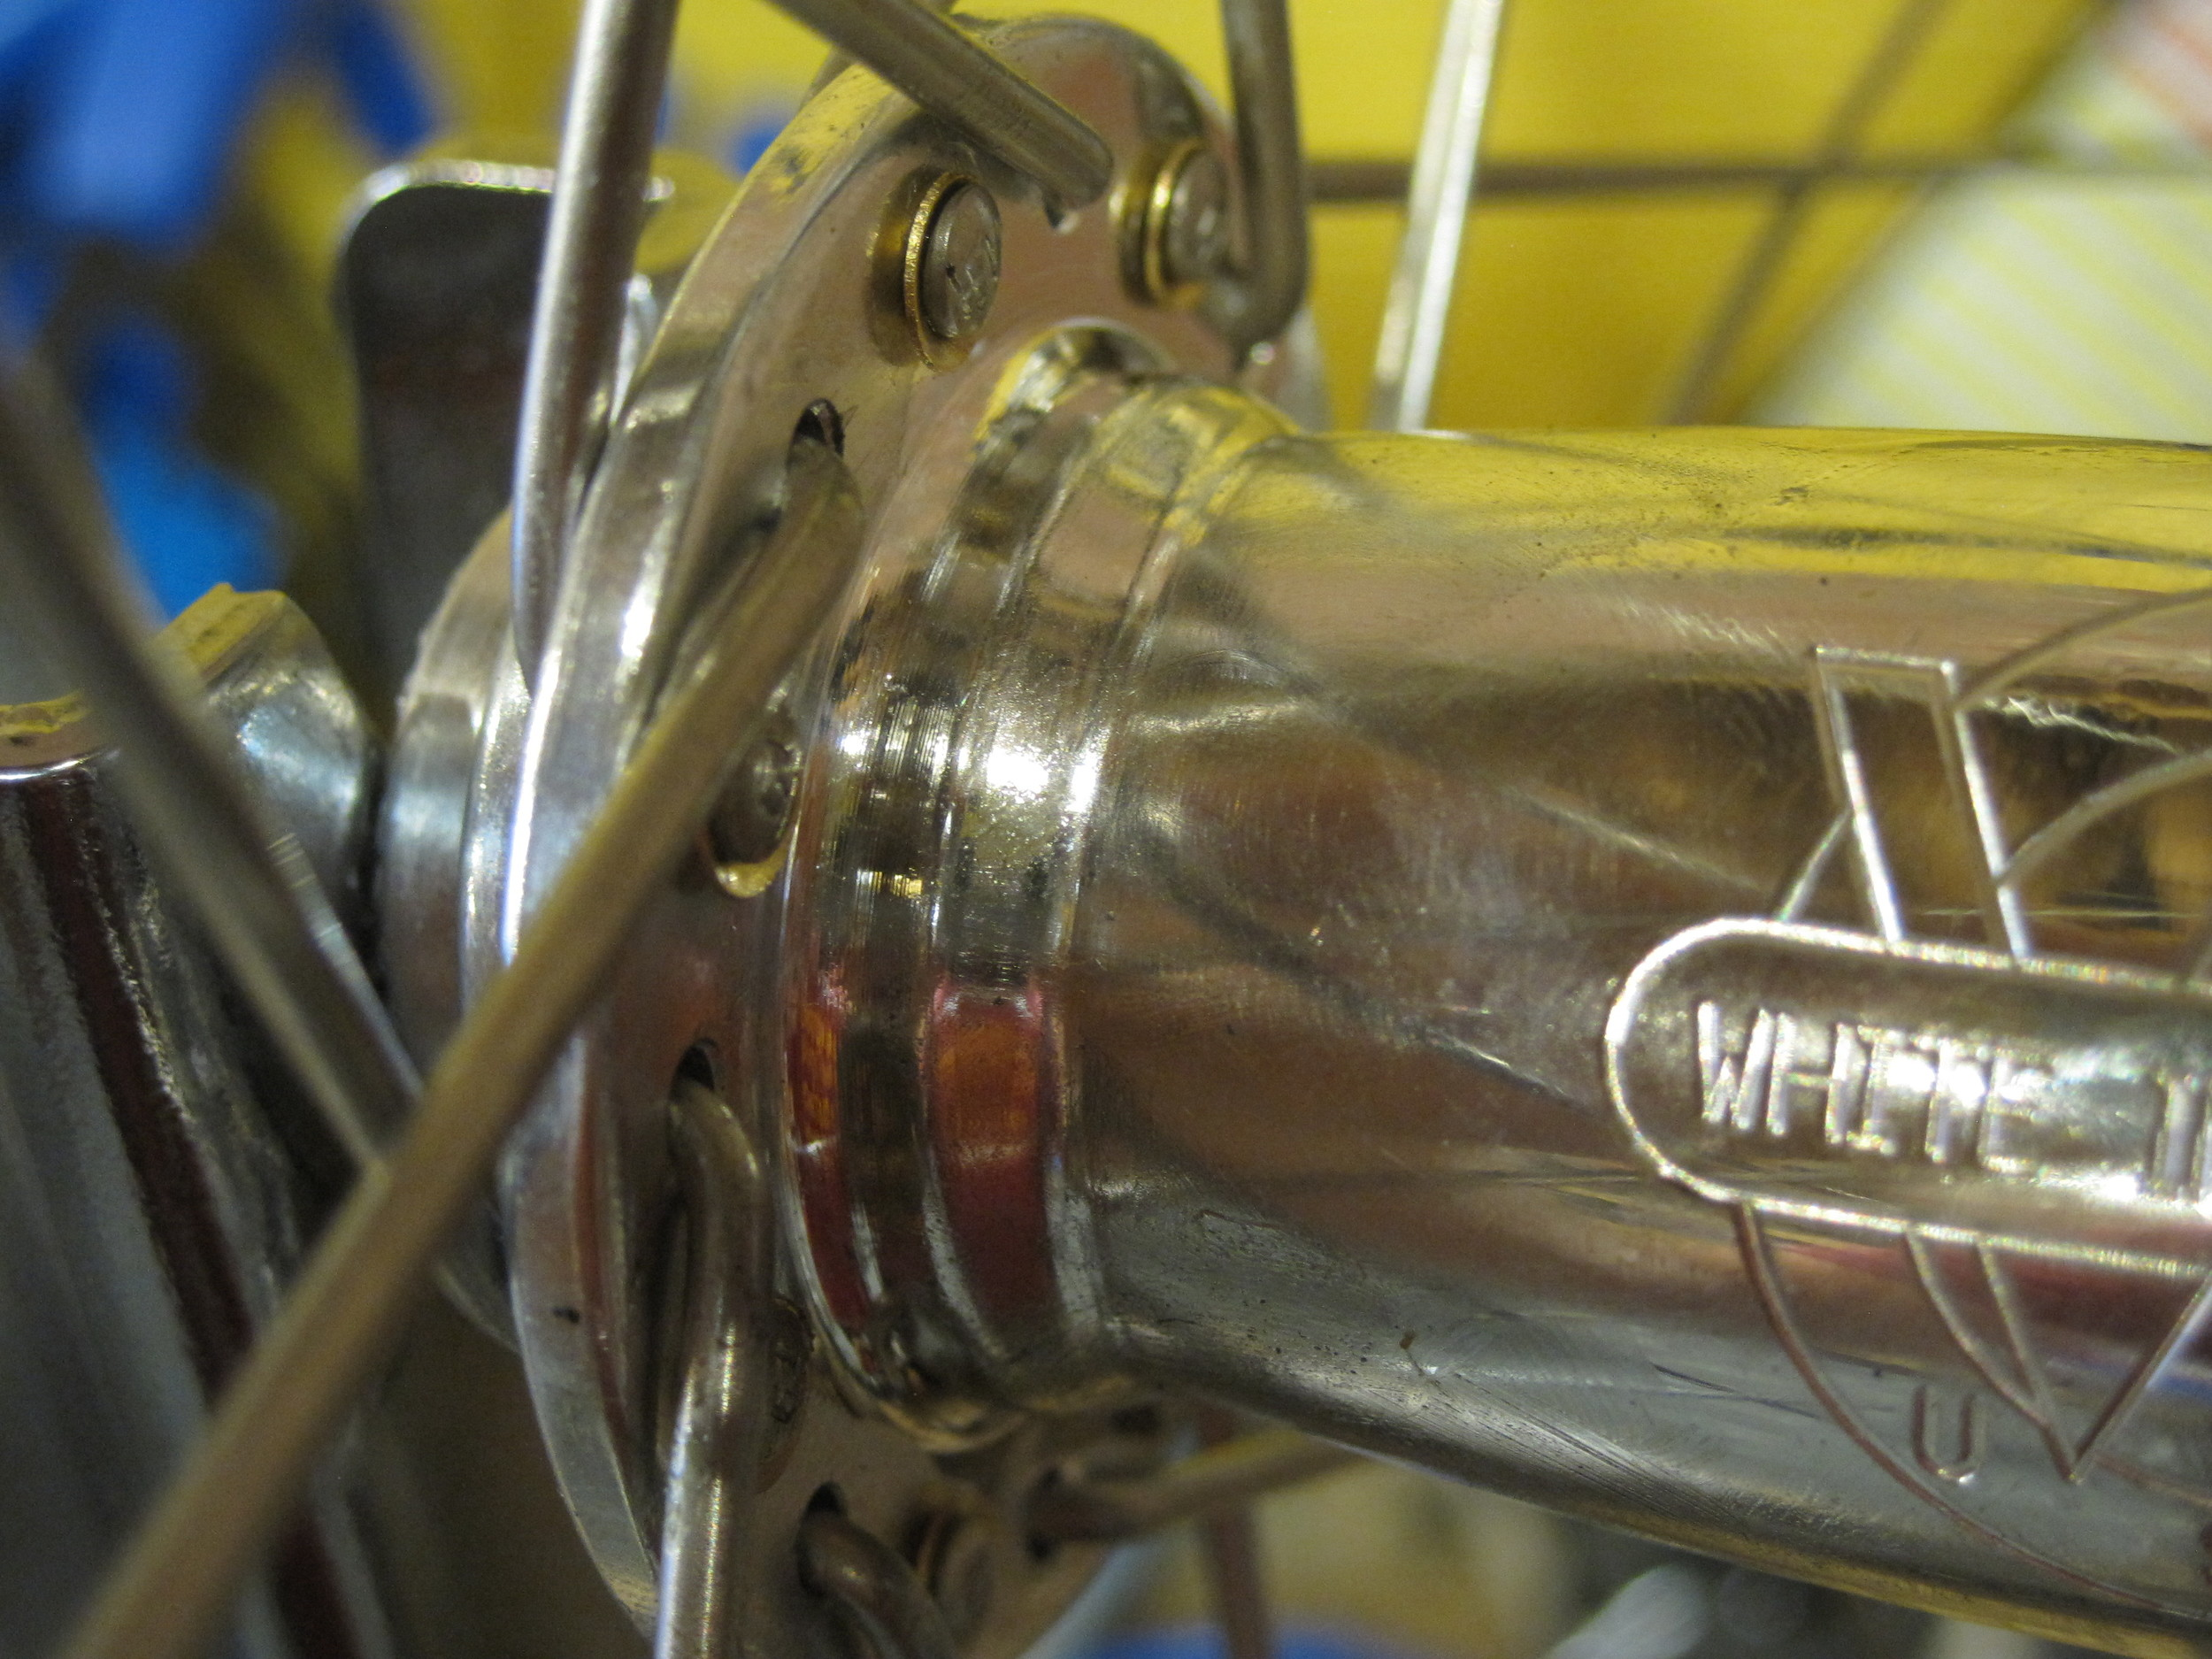 Notice the flat drilling for the spoke head.